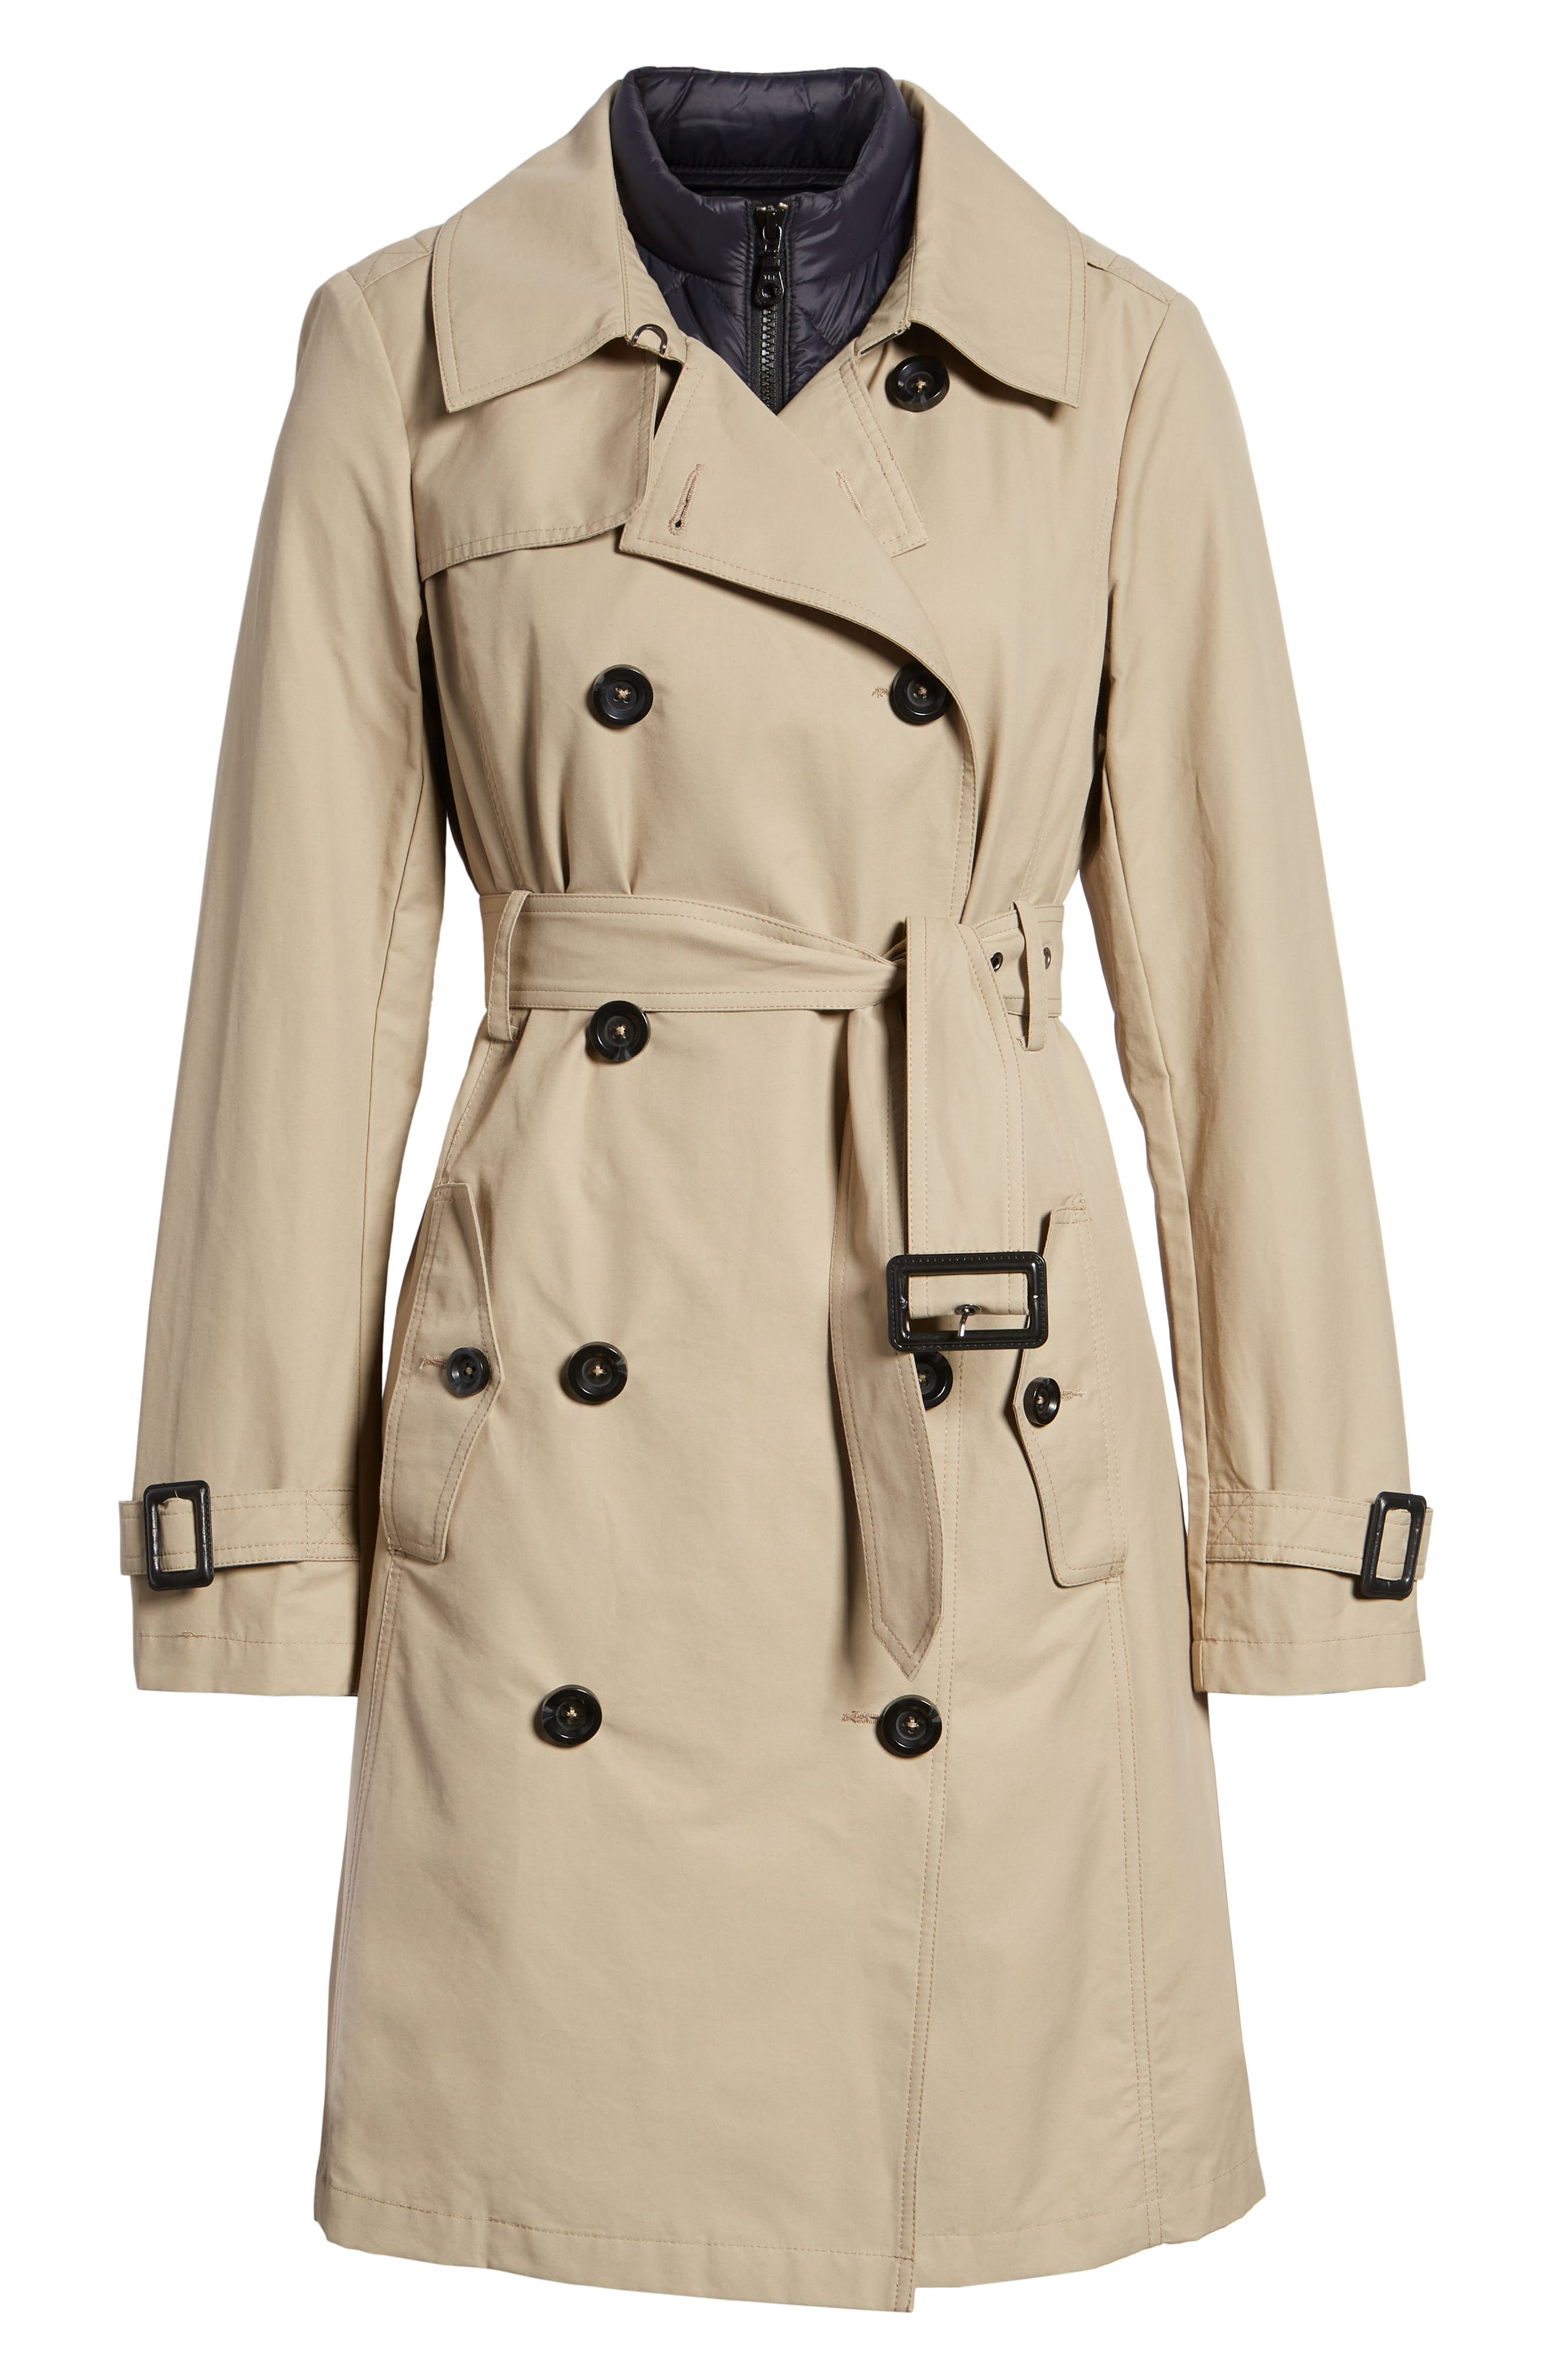 3-in-1 Trench Coat with Vest,                             Alternate thumbnail 7, color,                             299